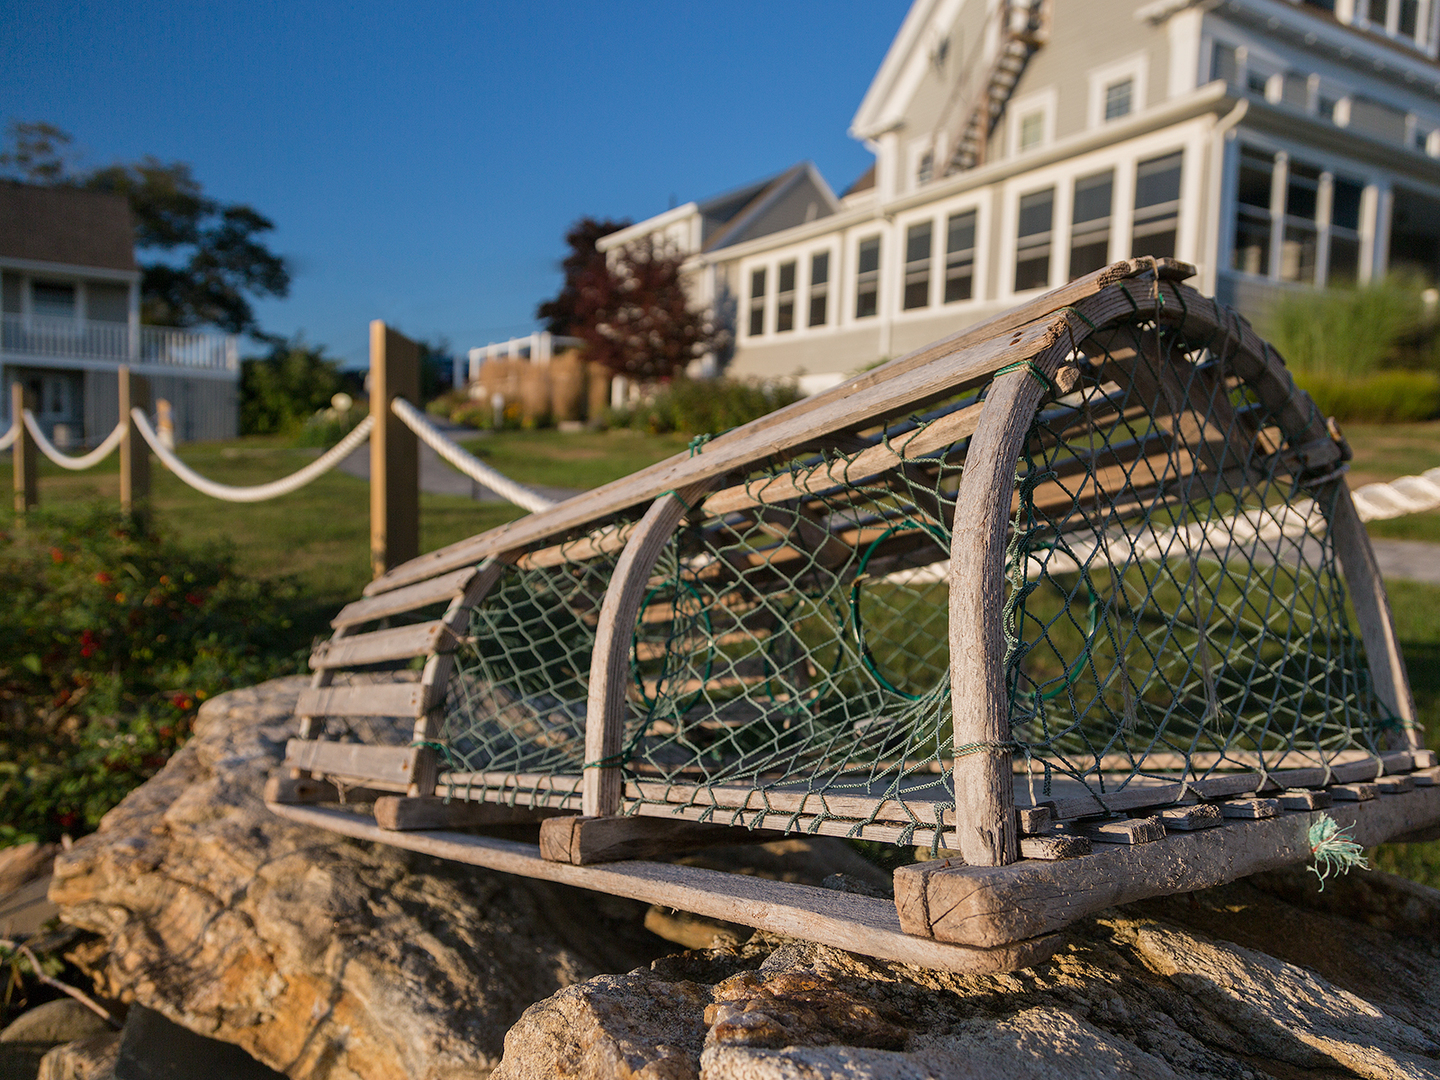 A bench in front of a building at Topside Inn.